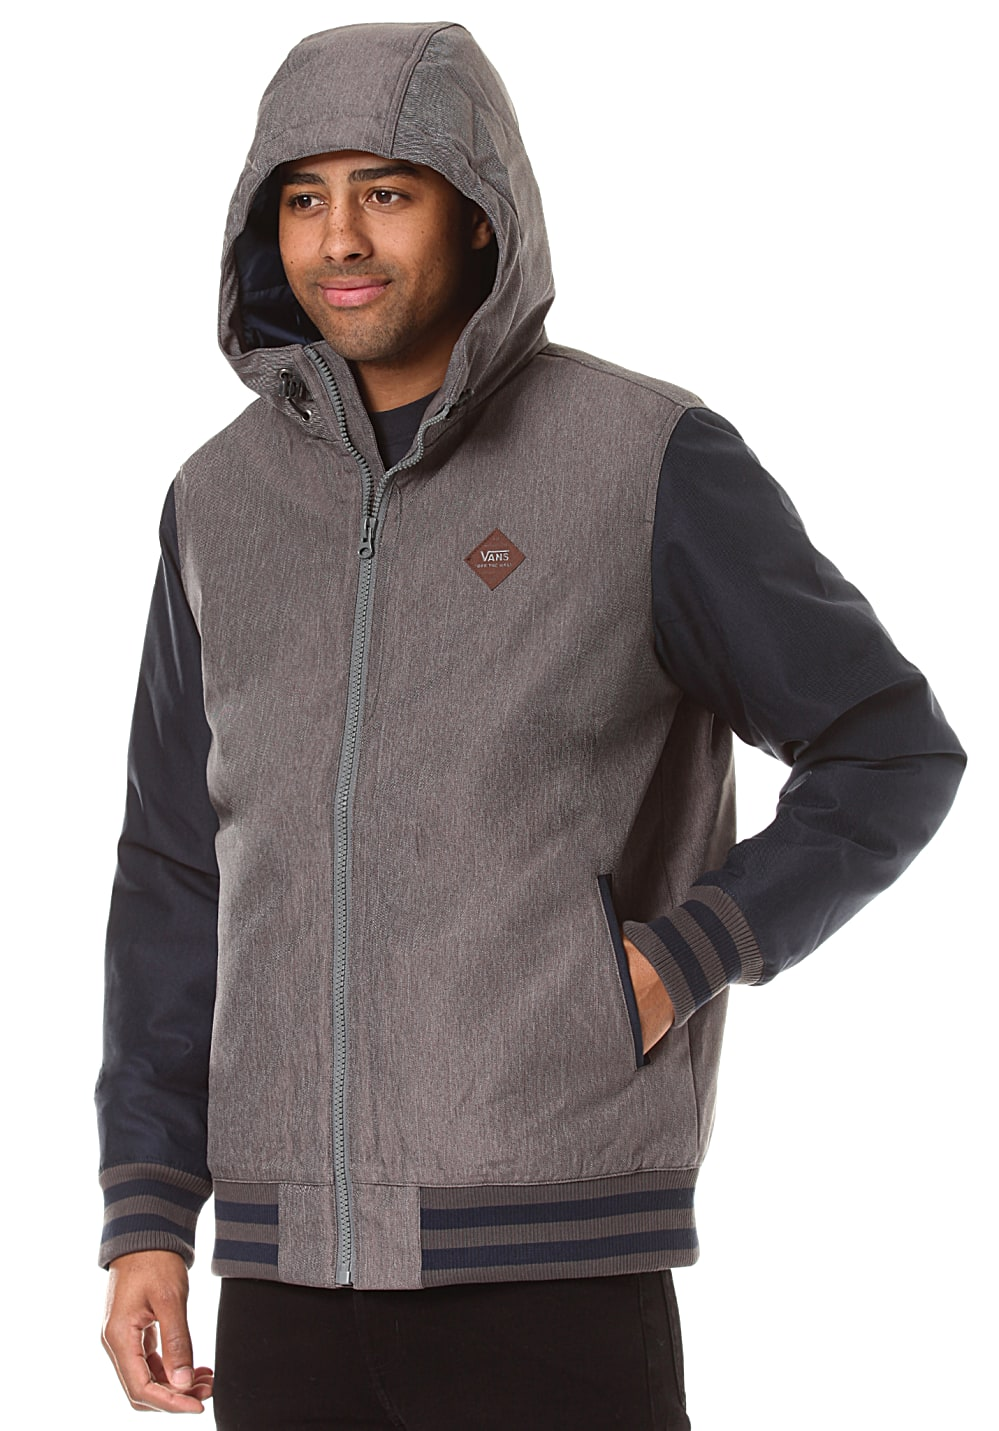 ea3b92fed6 VANS Rutherford Mte - Jacke für Herren - Grau - Planet Sports